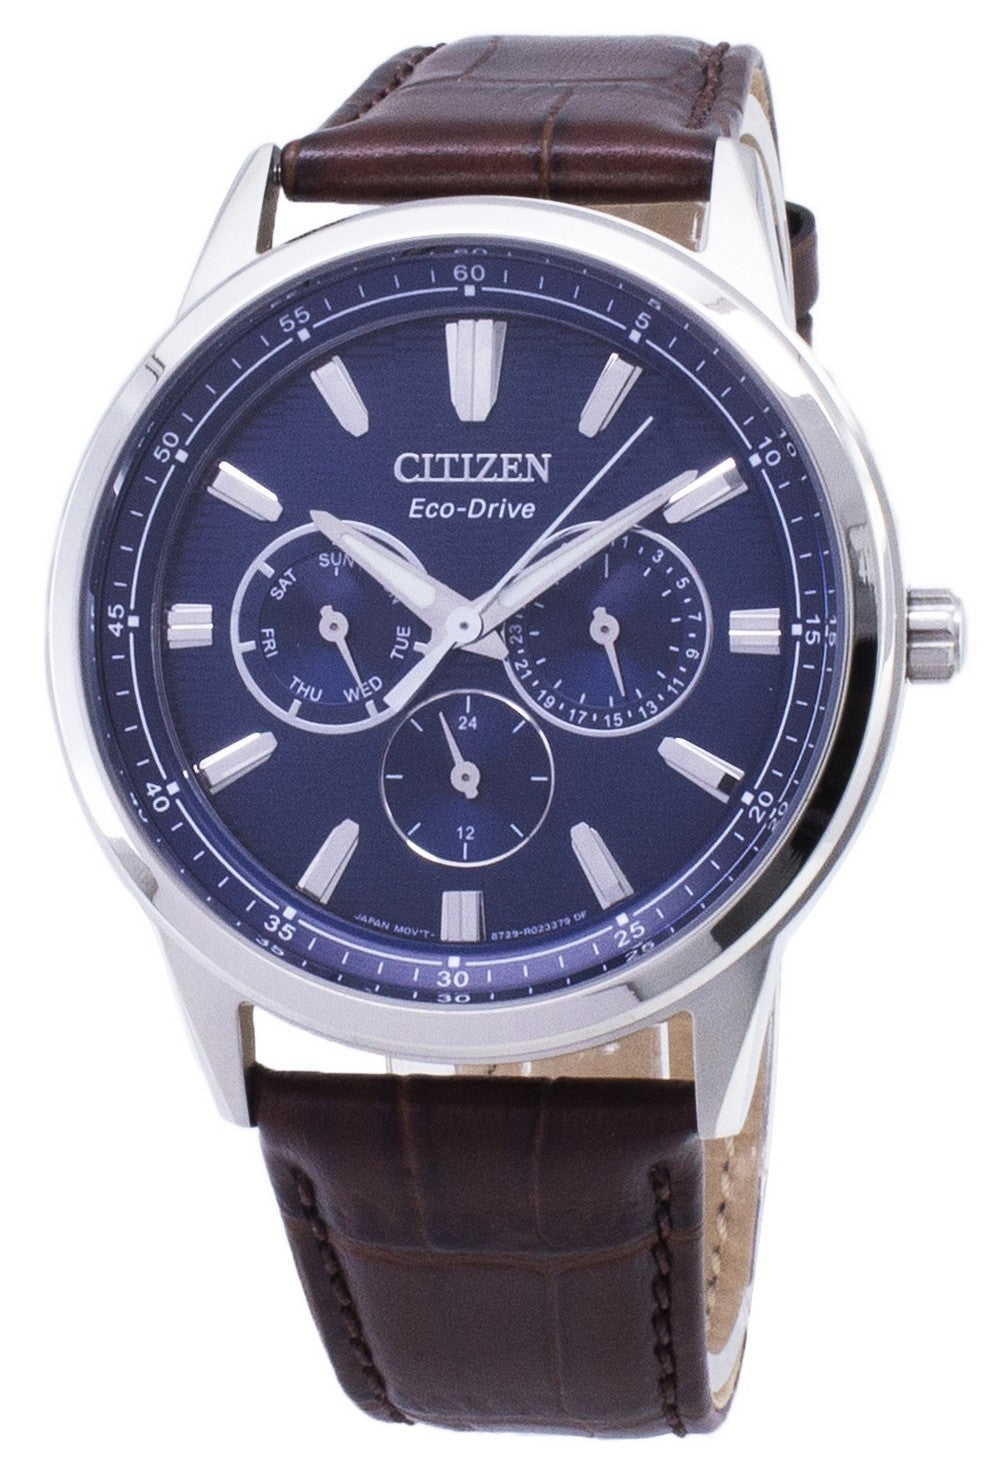 Citizen Eco-drive Bu2070-12l Chronograph Analog Men's Watch